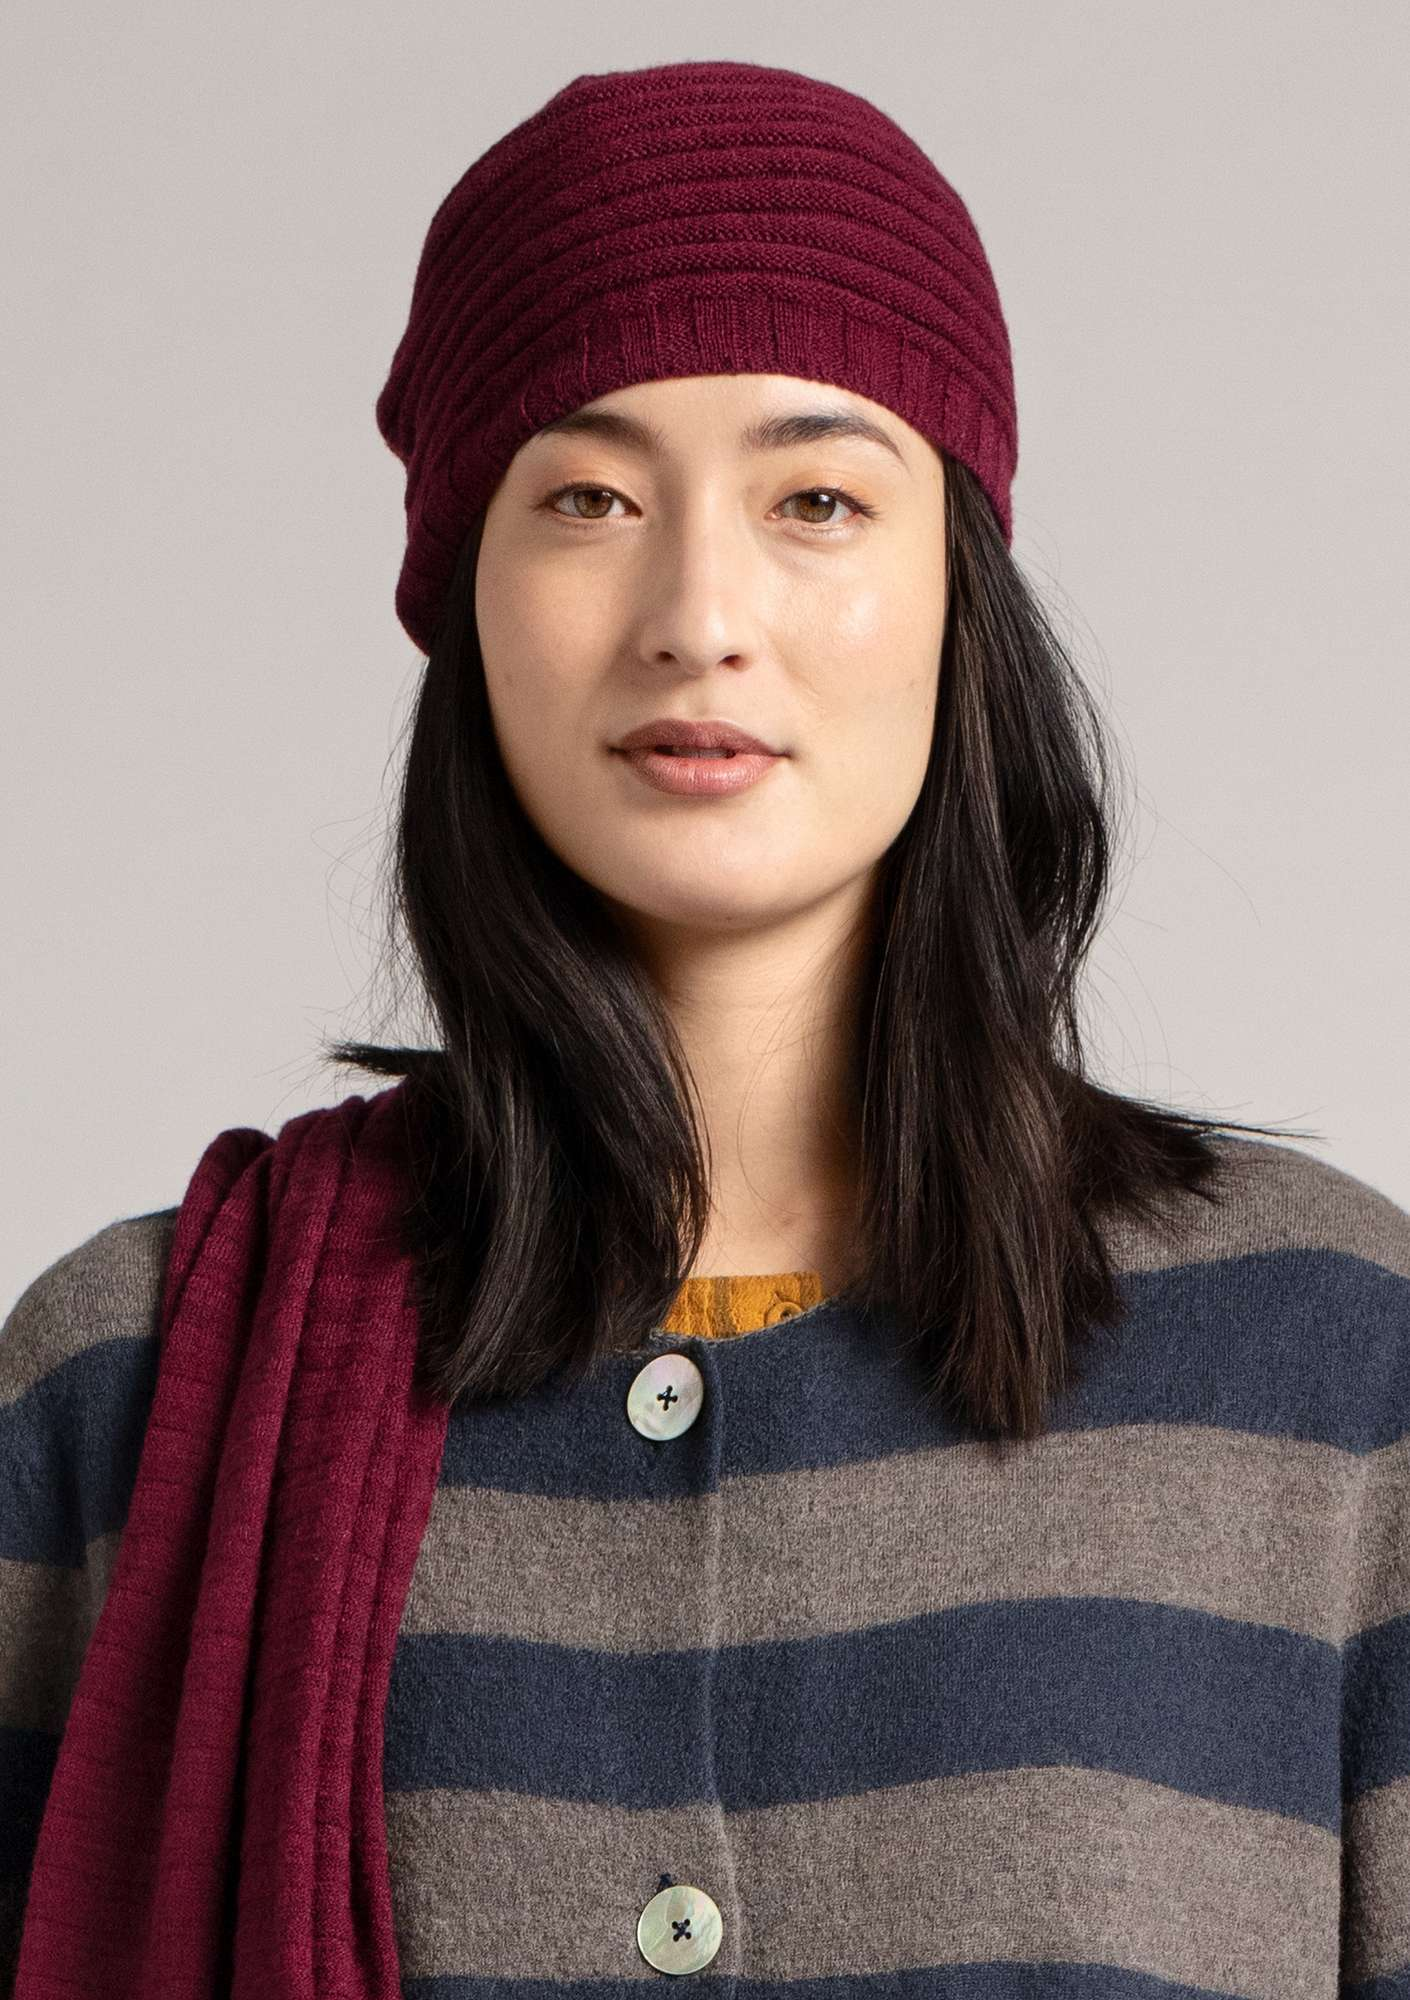 Pleated hat in a recycled cashmere blend burgundy